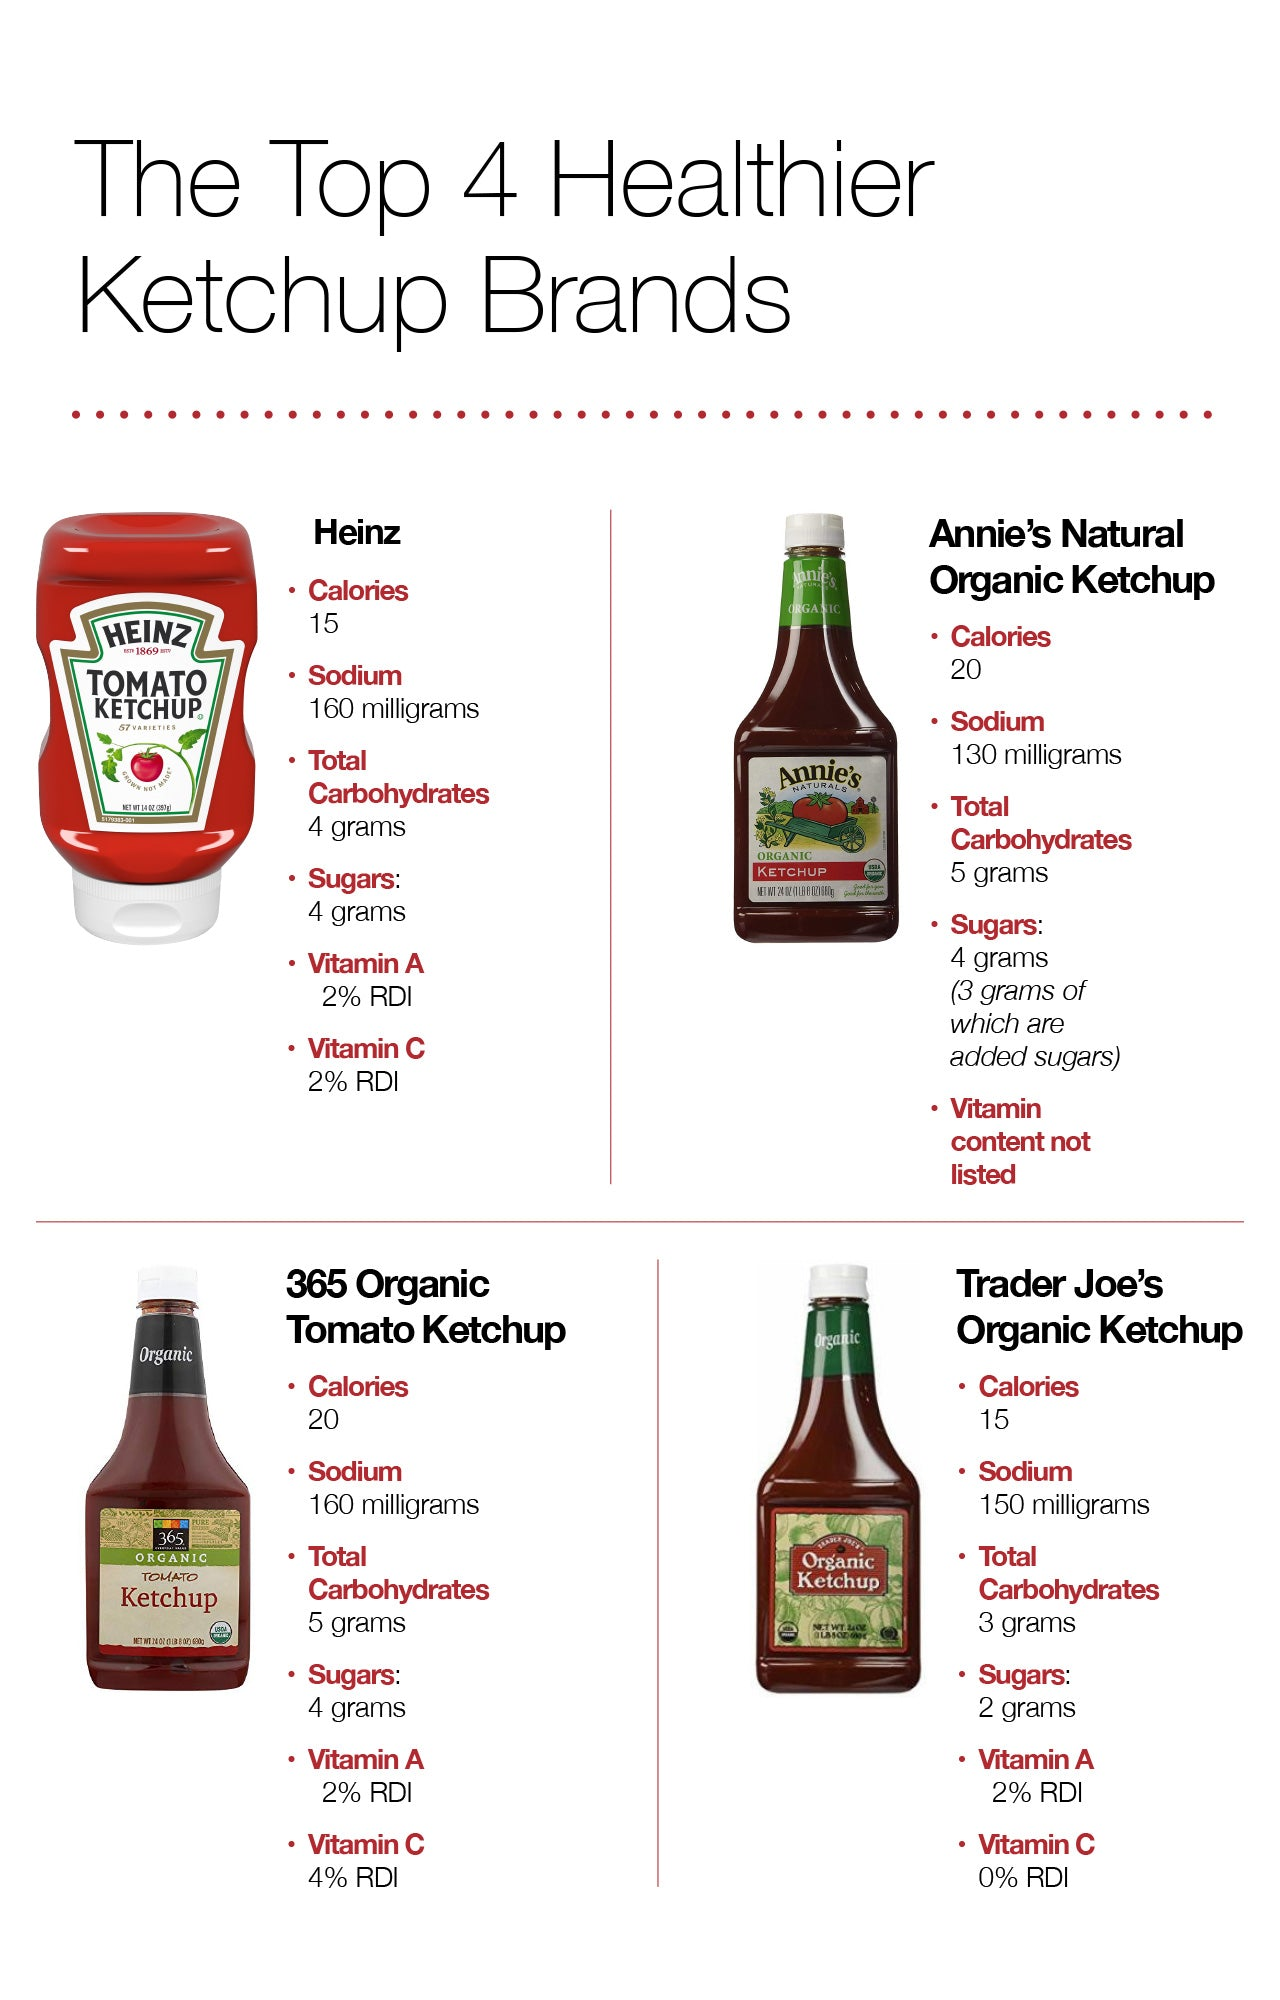 The Top 4 Healthier Ketchup Brands